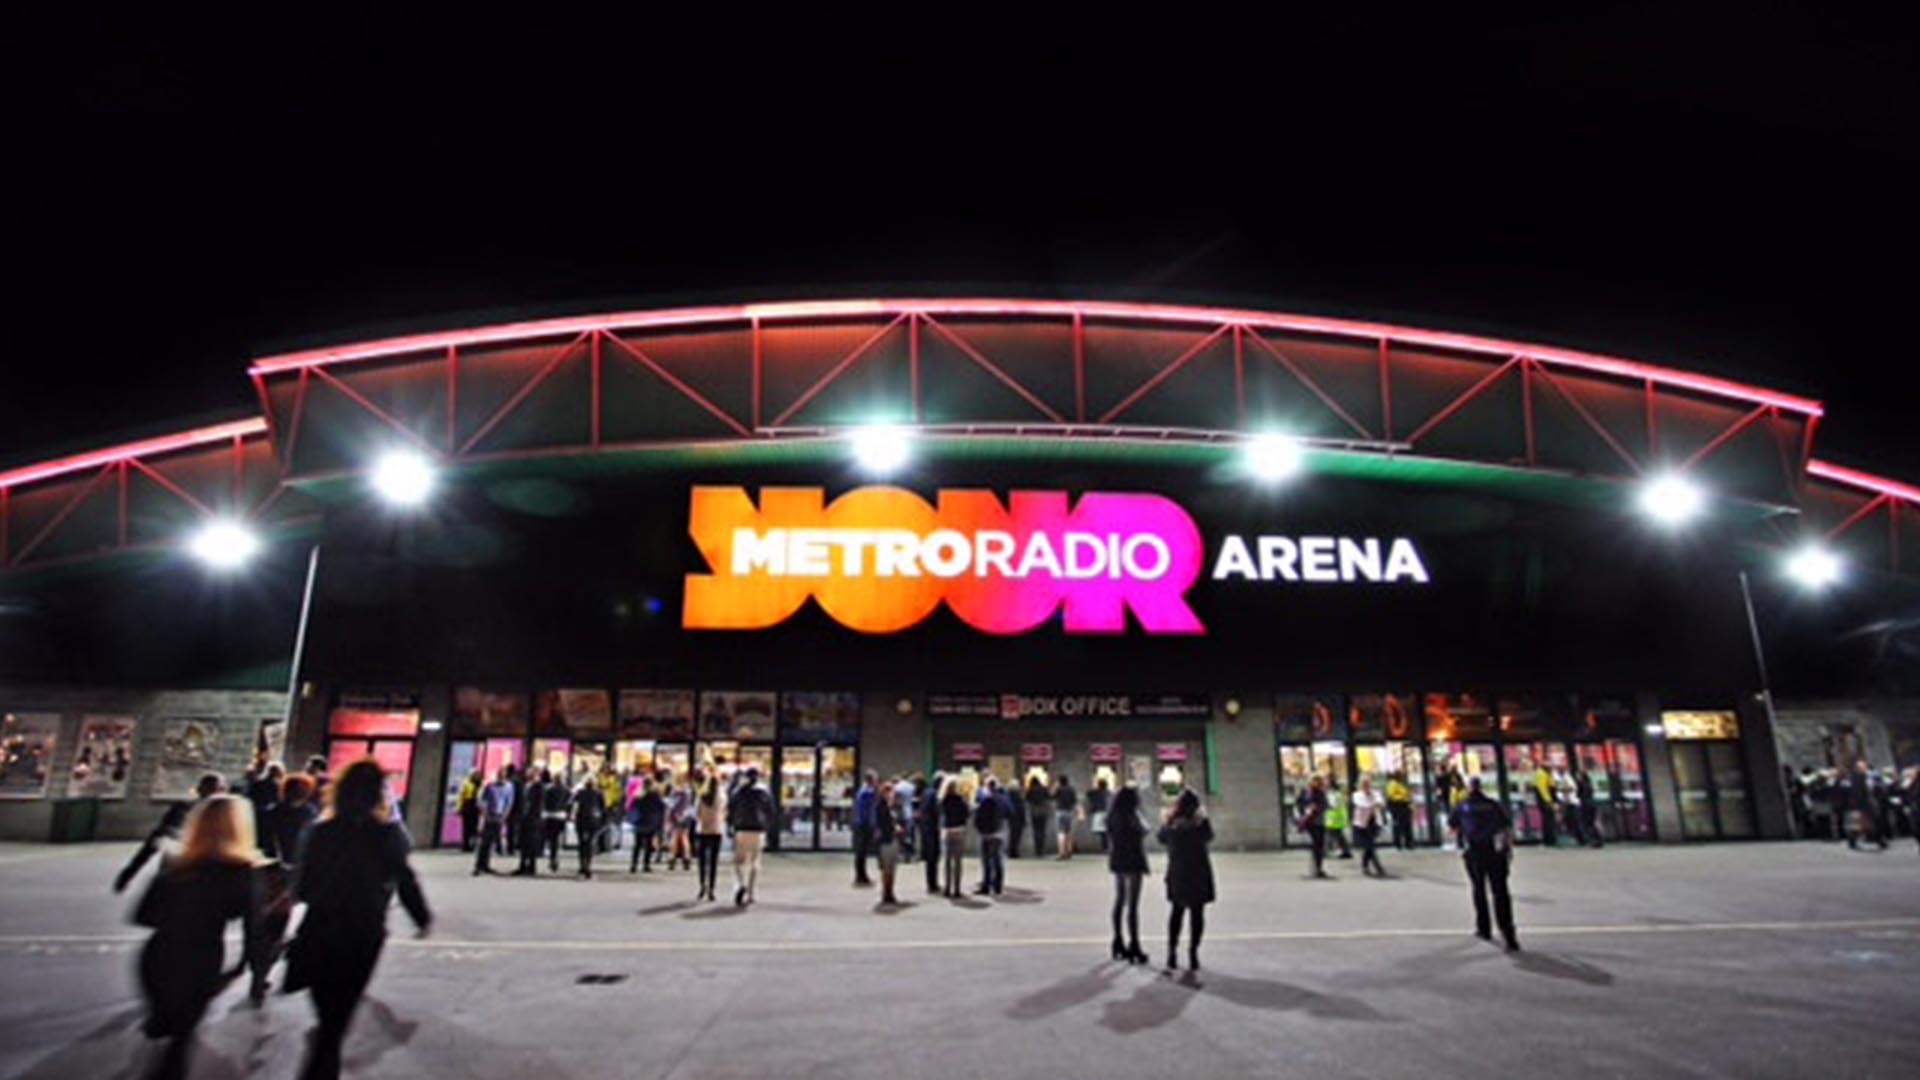 The Metro Radio Arena